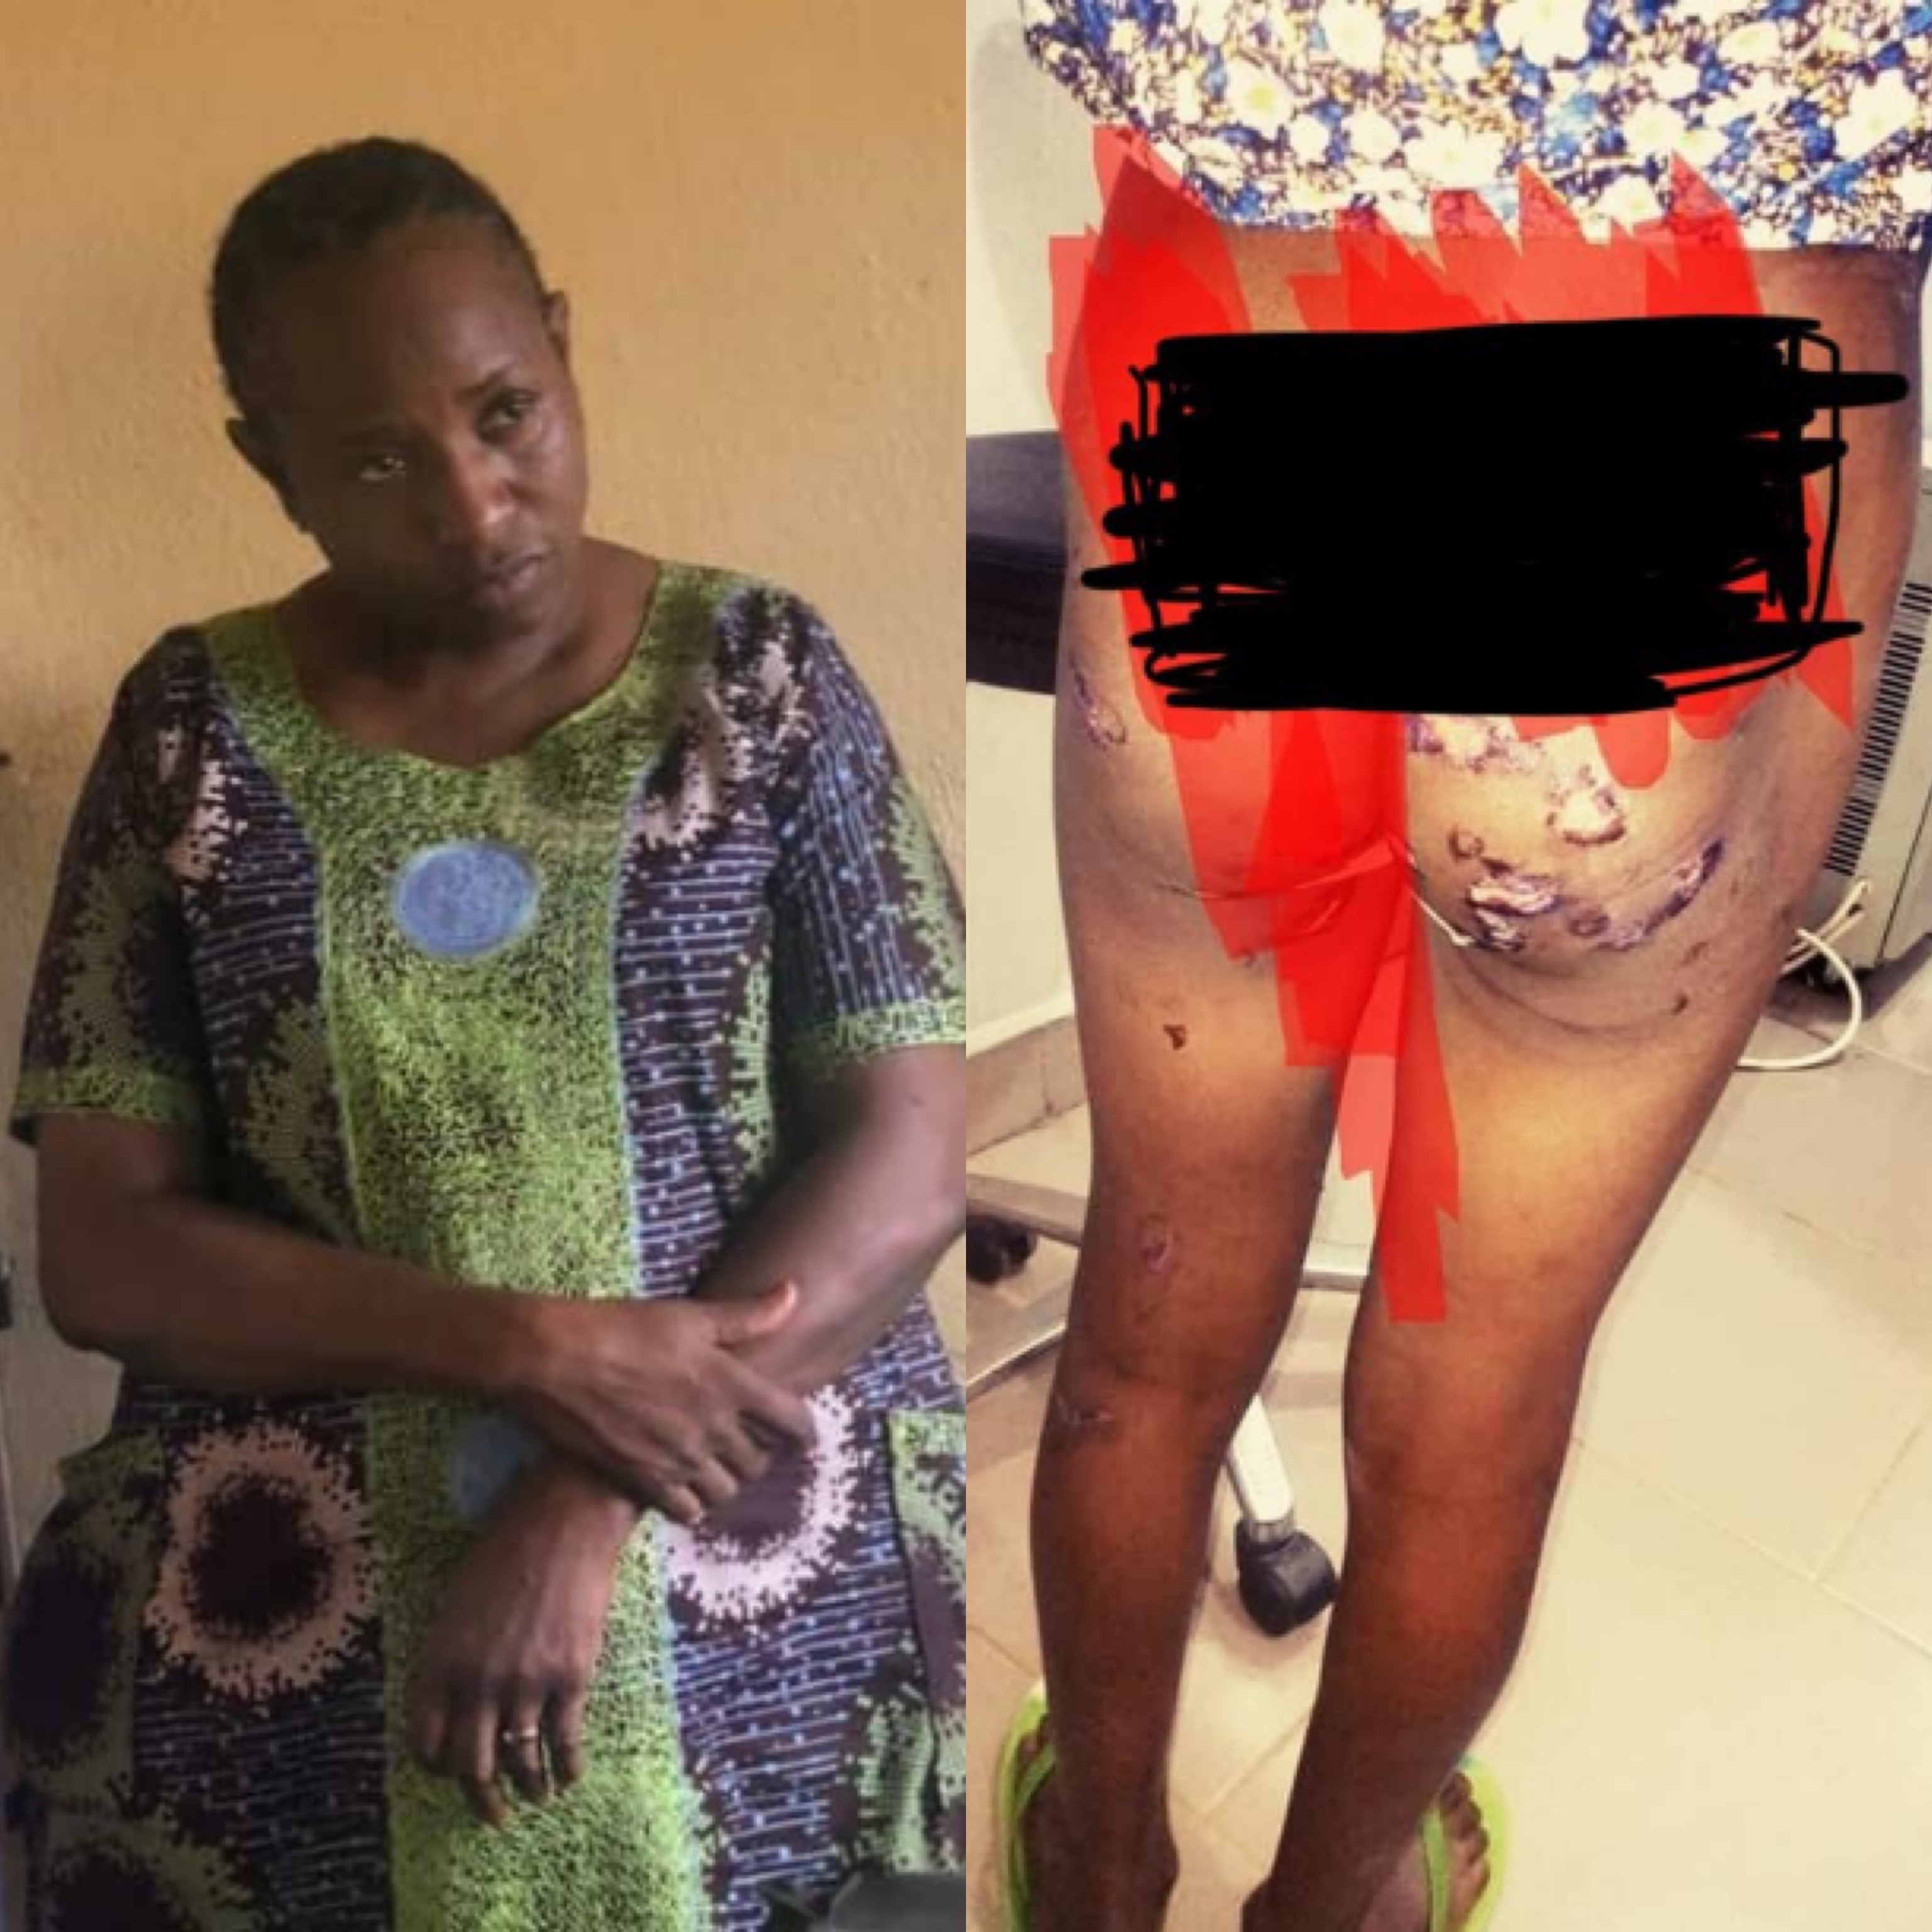 Deaconess tortures 14-year-old girl in Kaduna